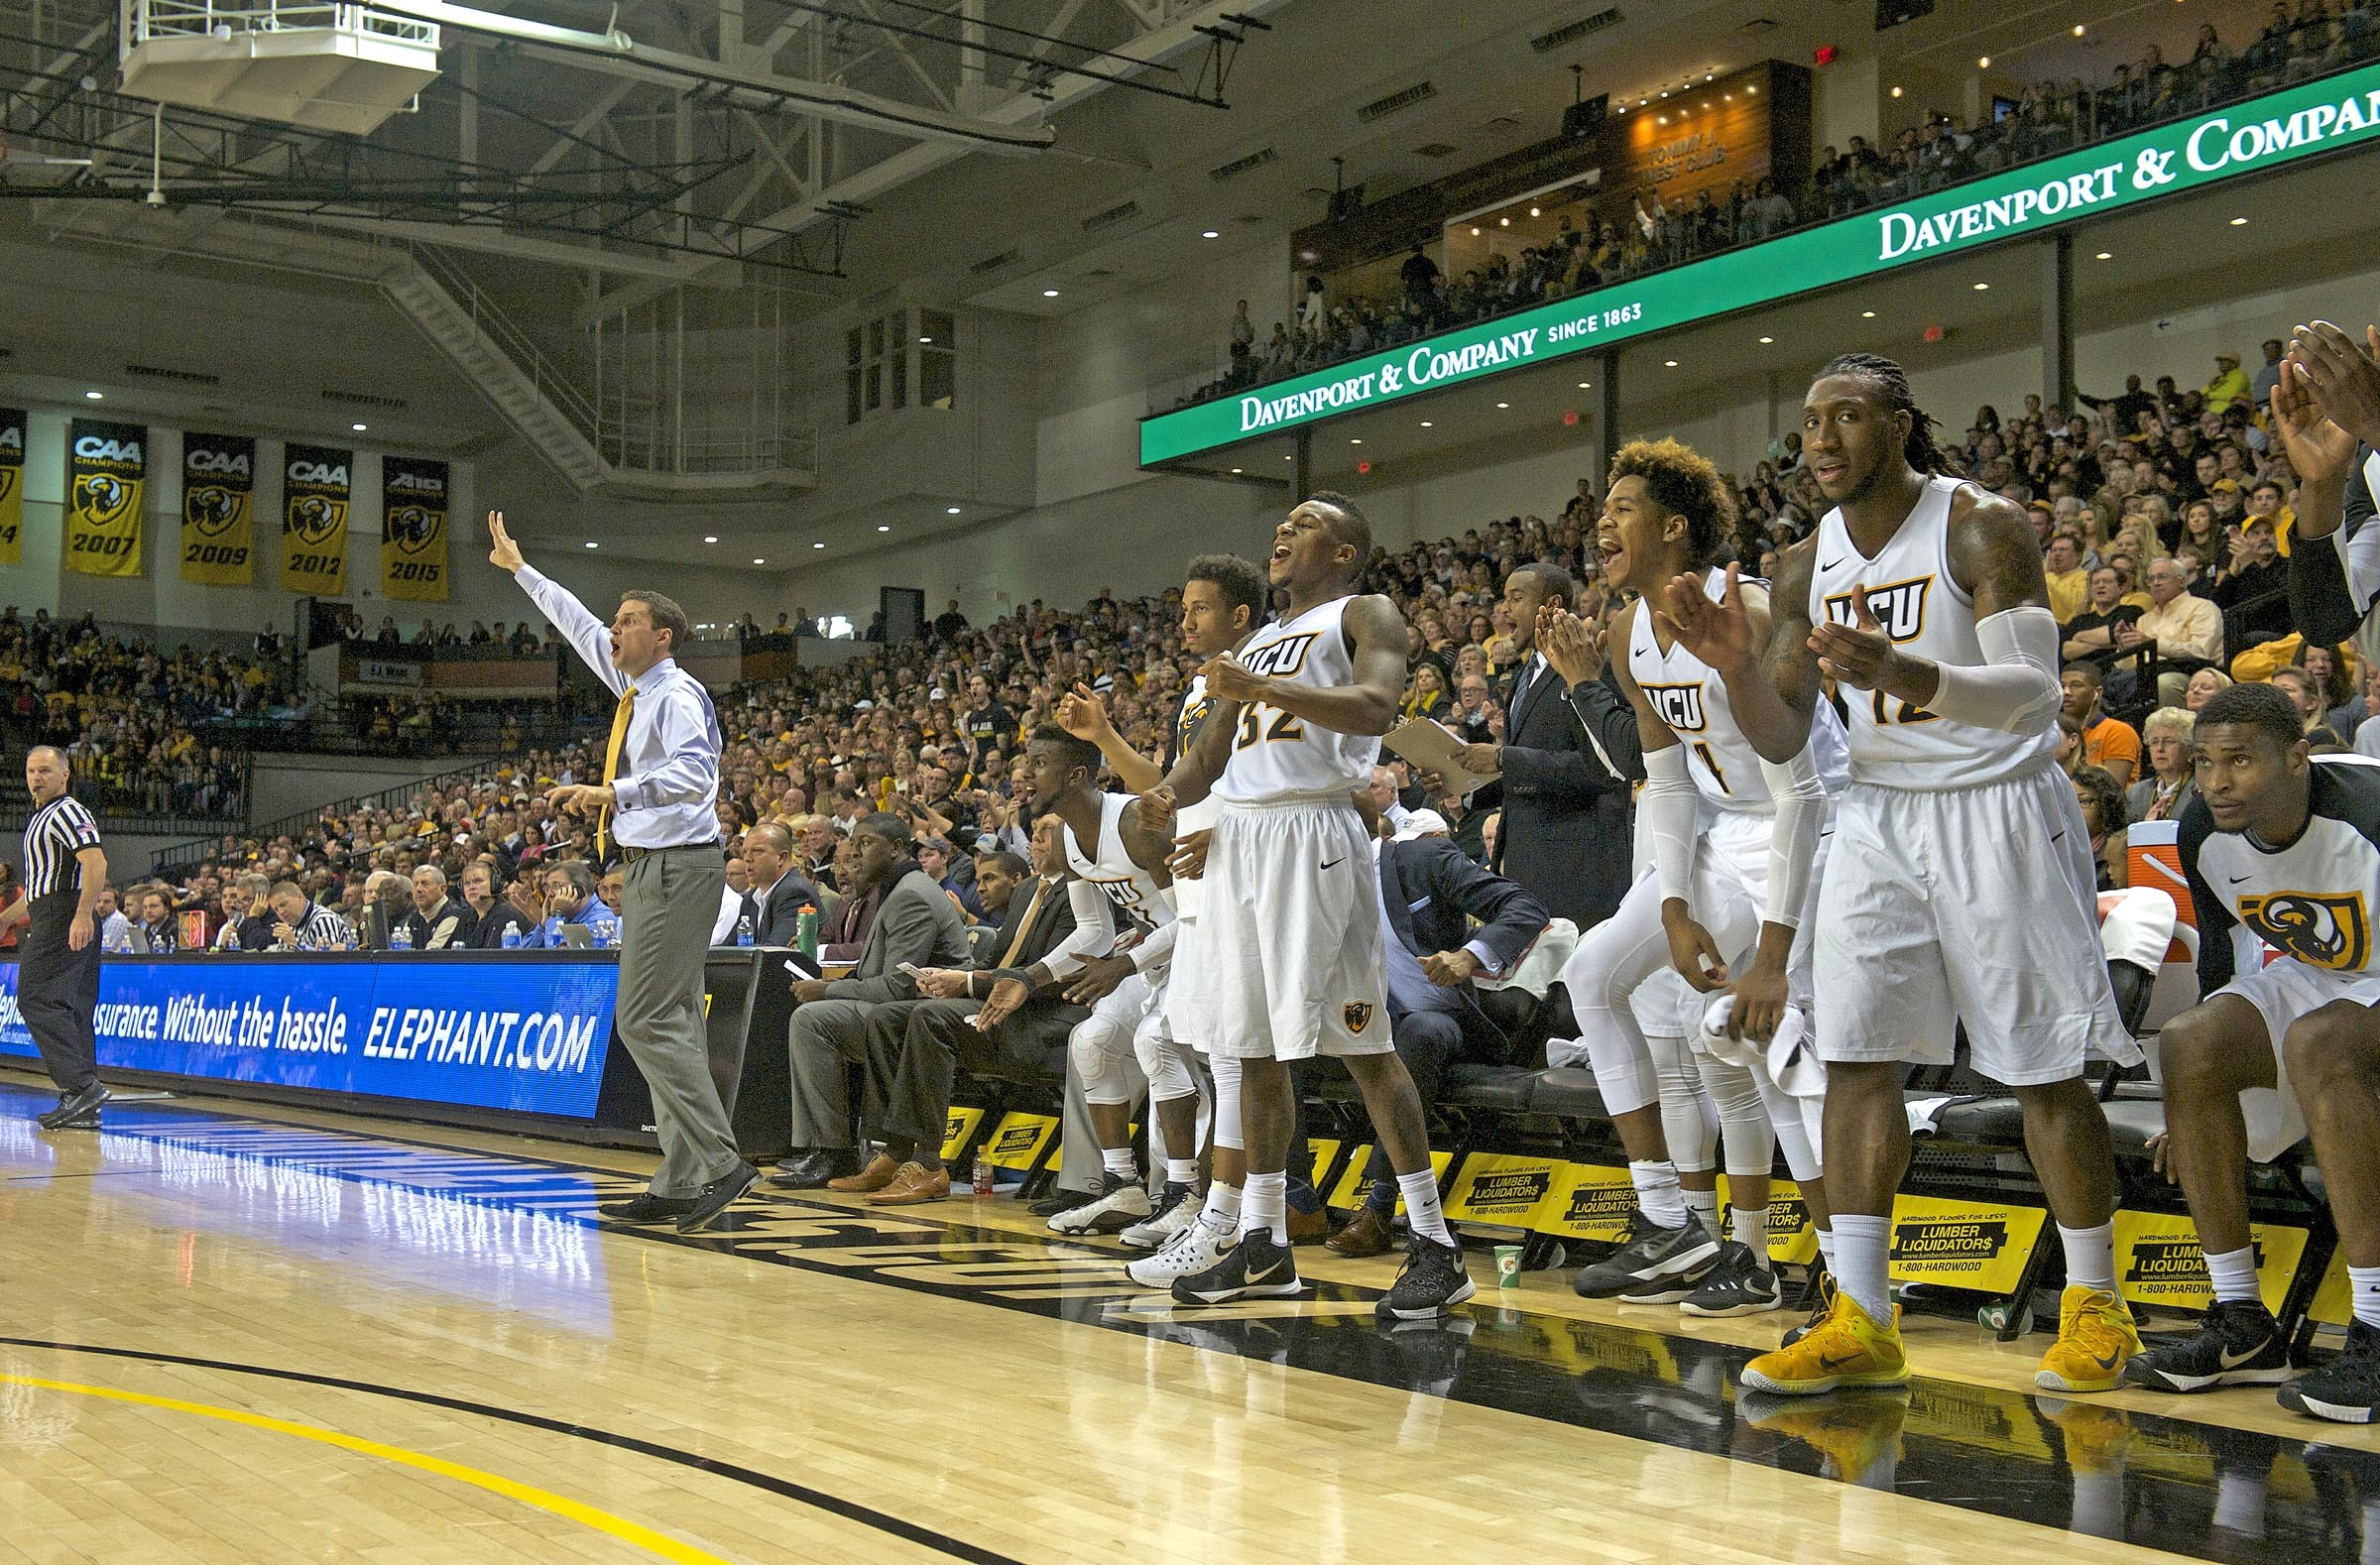 Coach Will Wade directs his team during a lopsided victory over Prairie View A&M University on Nov. 13. - SCOTT ELMQUIST